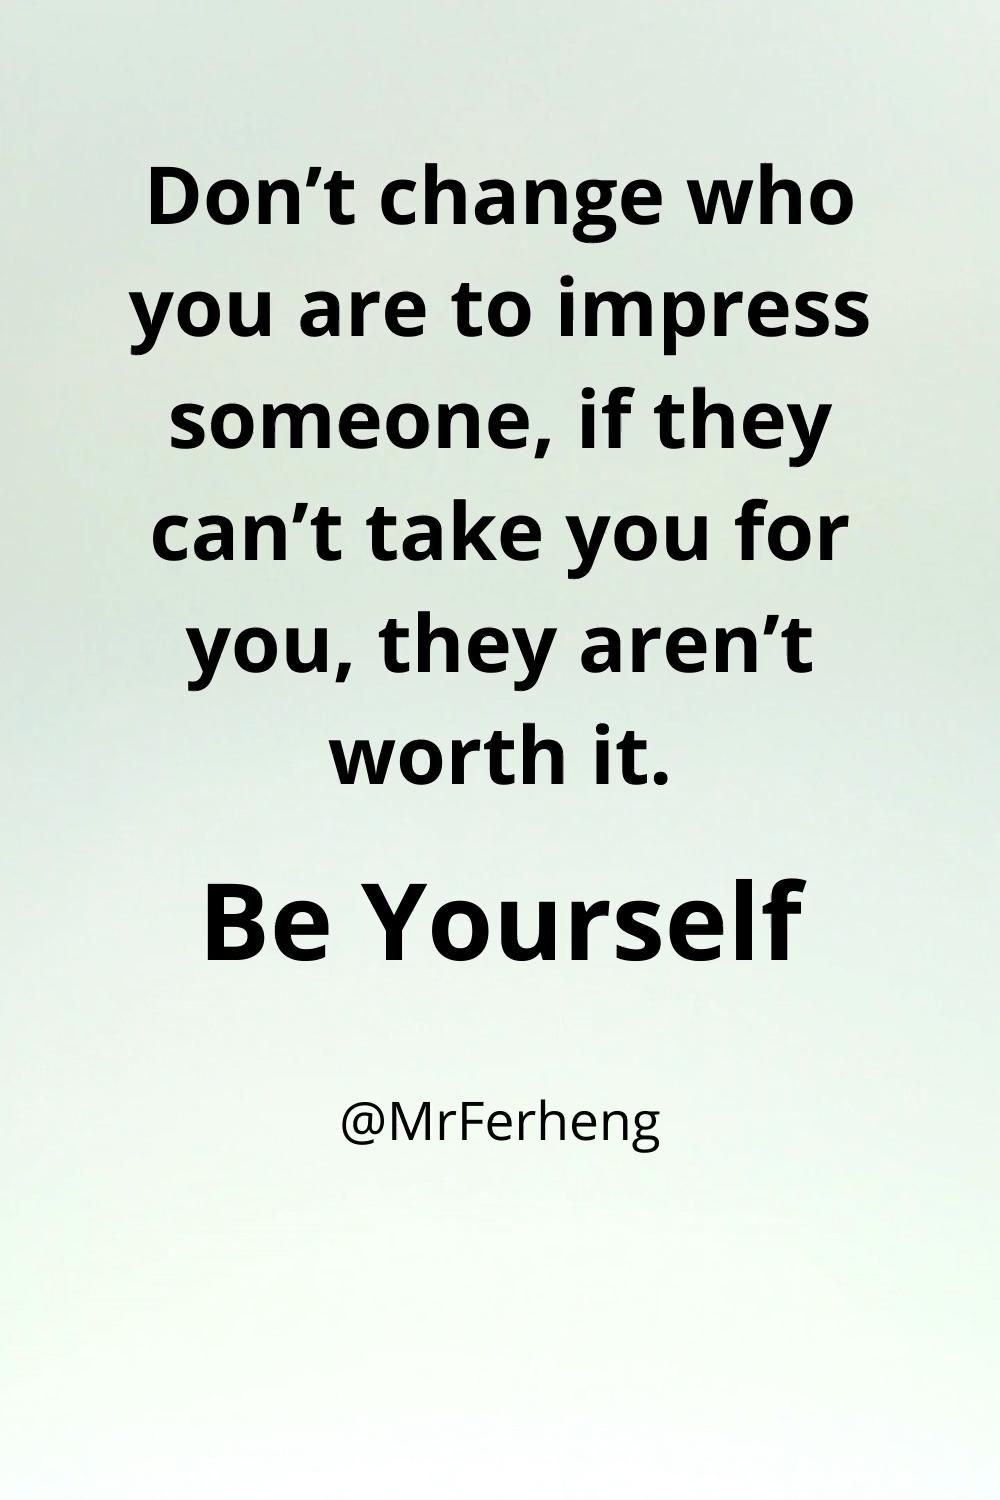 Don't try to impress anyone